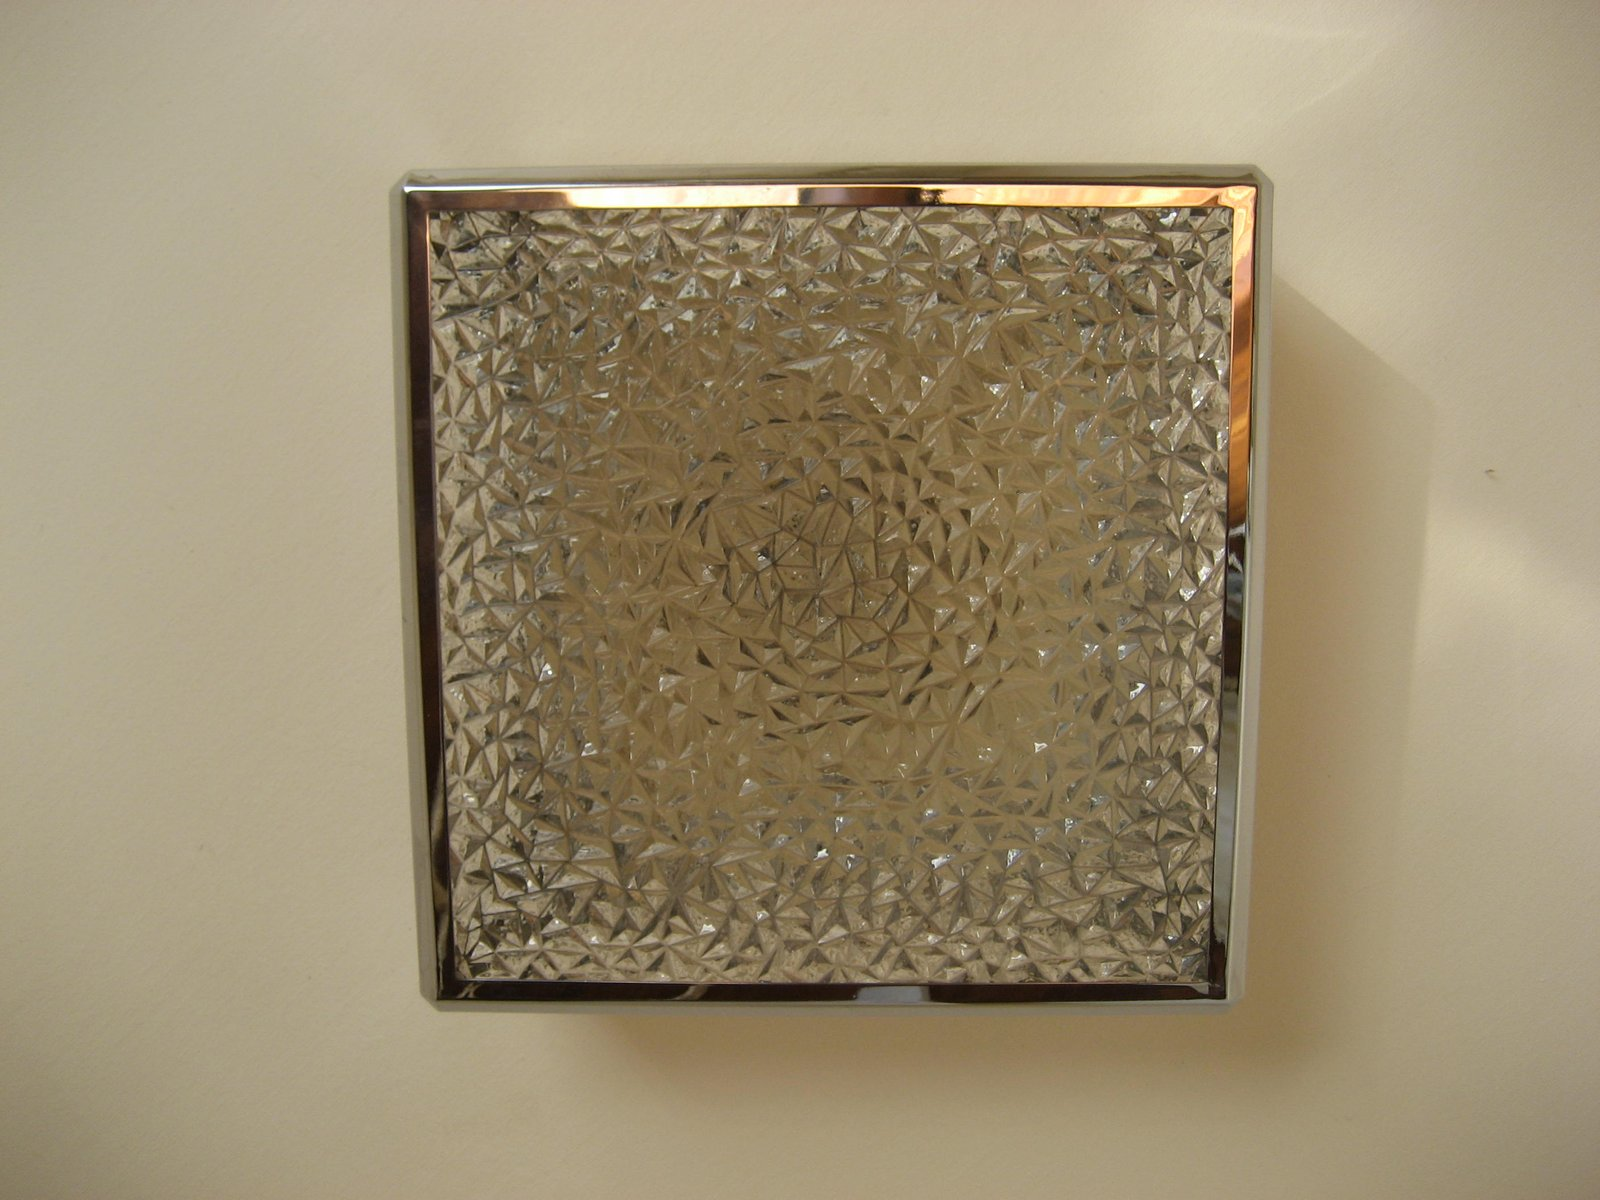 Vintage Ceiling Lamp With Plastic Sheets In Chrome Frame For Sale At